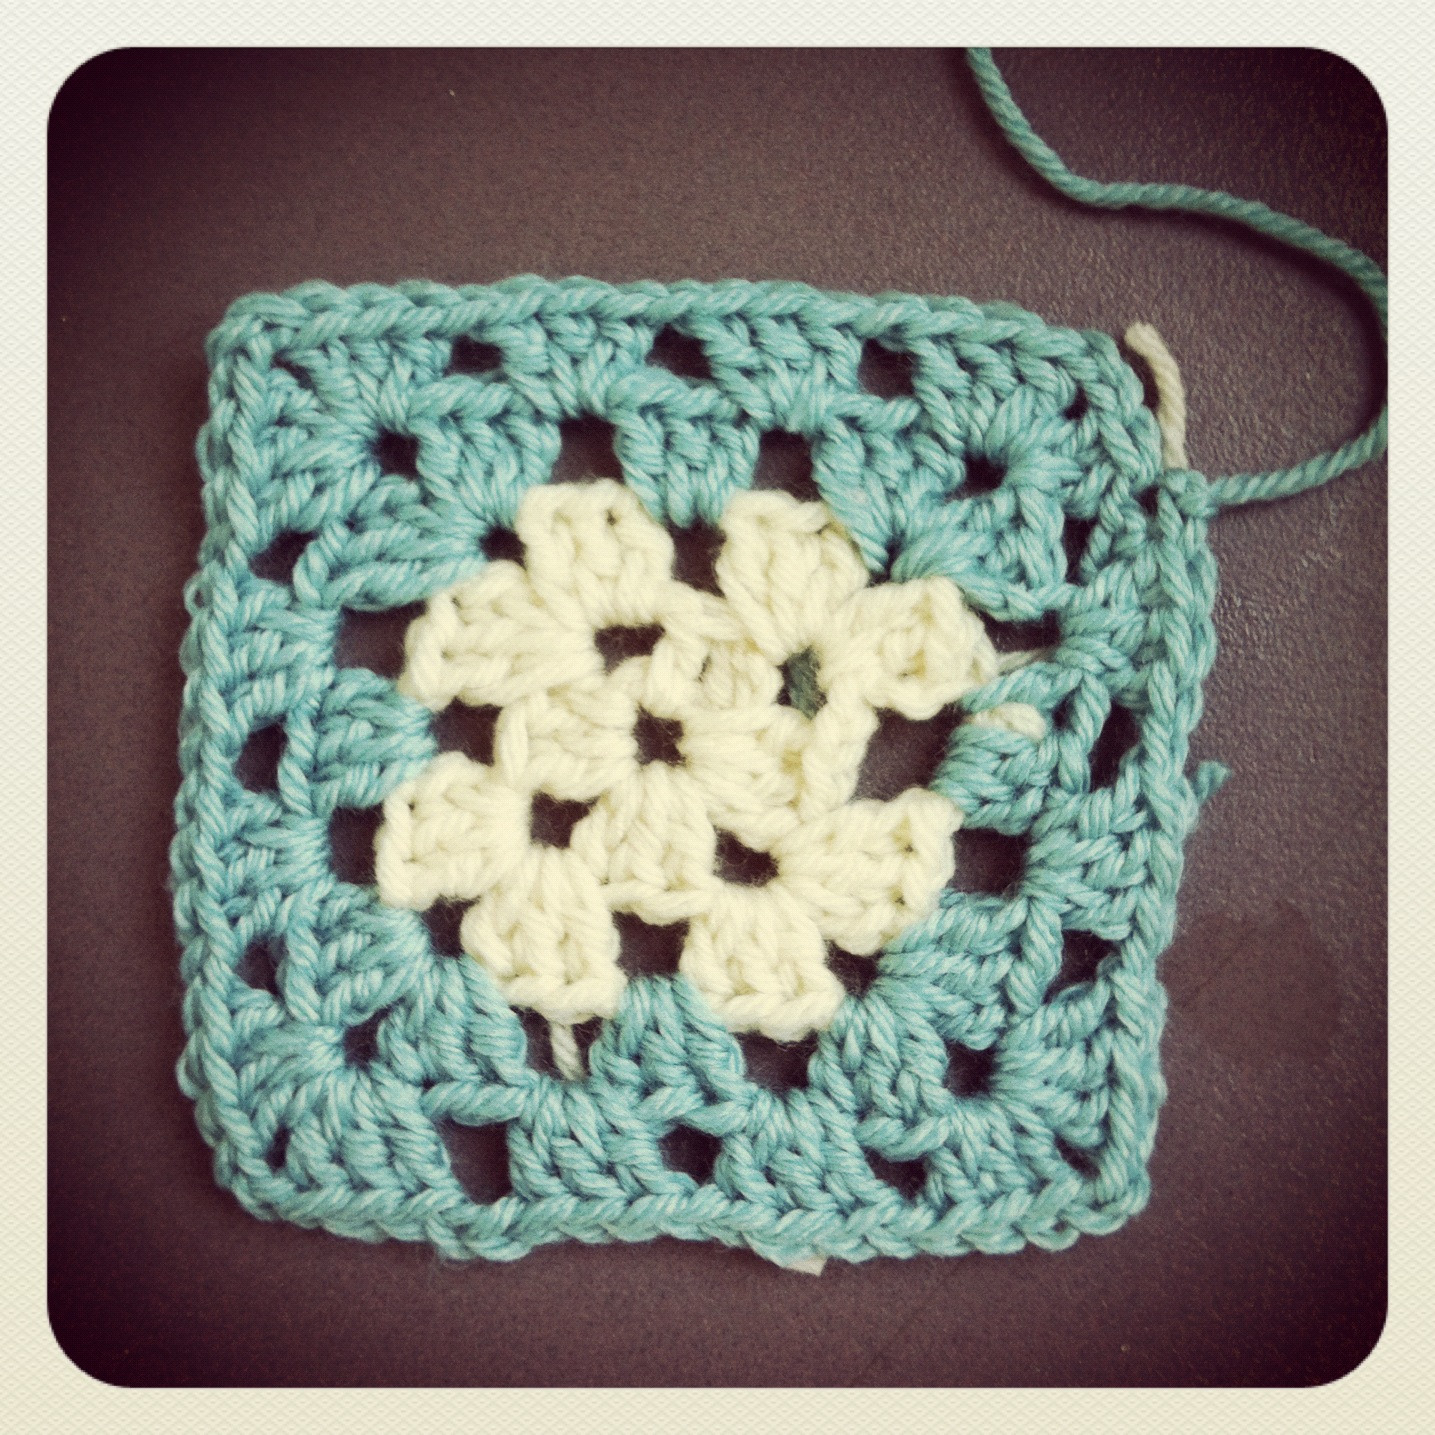 Yarn Over Crochet Beautiful the Happy Campers Yarn Over Hooked On Crochet Of Brilliant 49 Photos Yarn Over Crochet